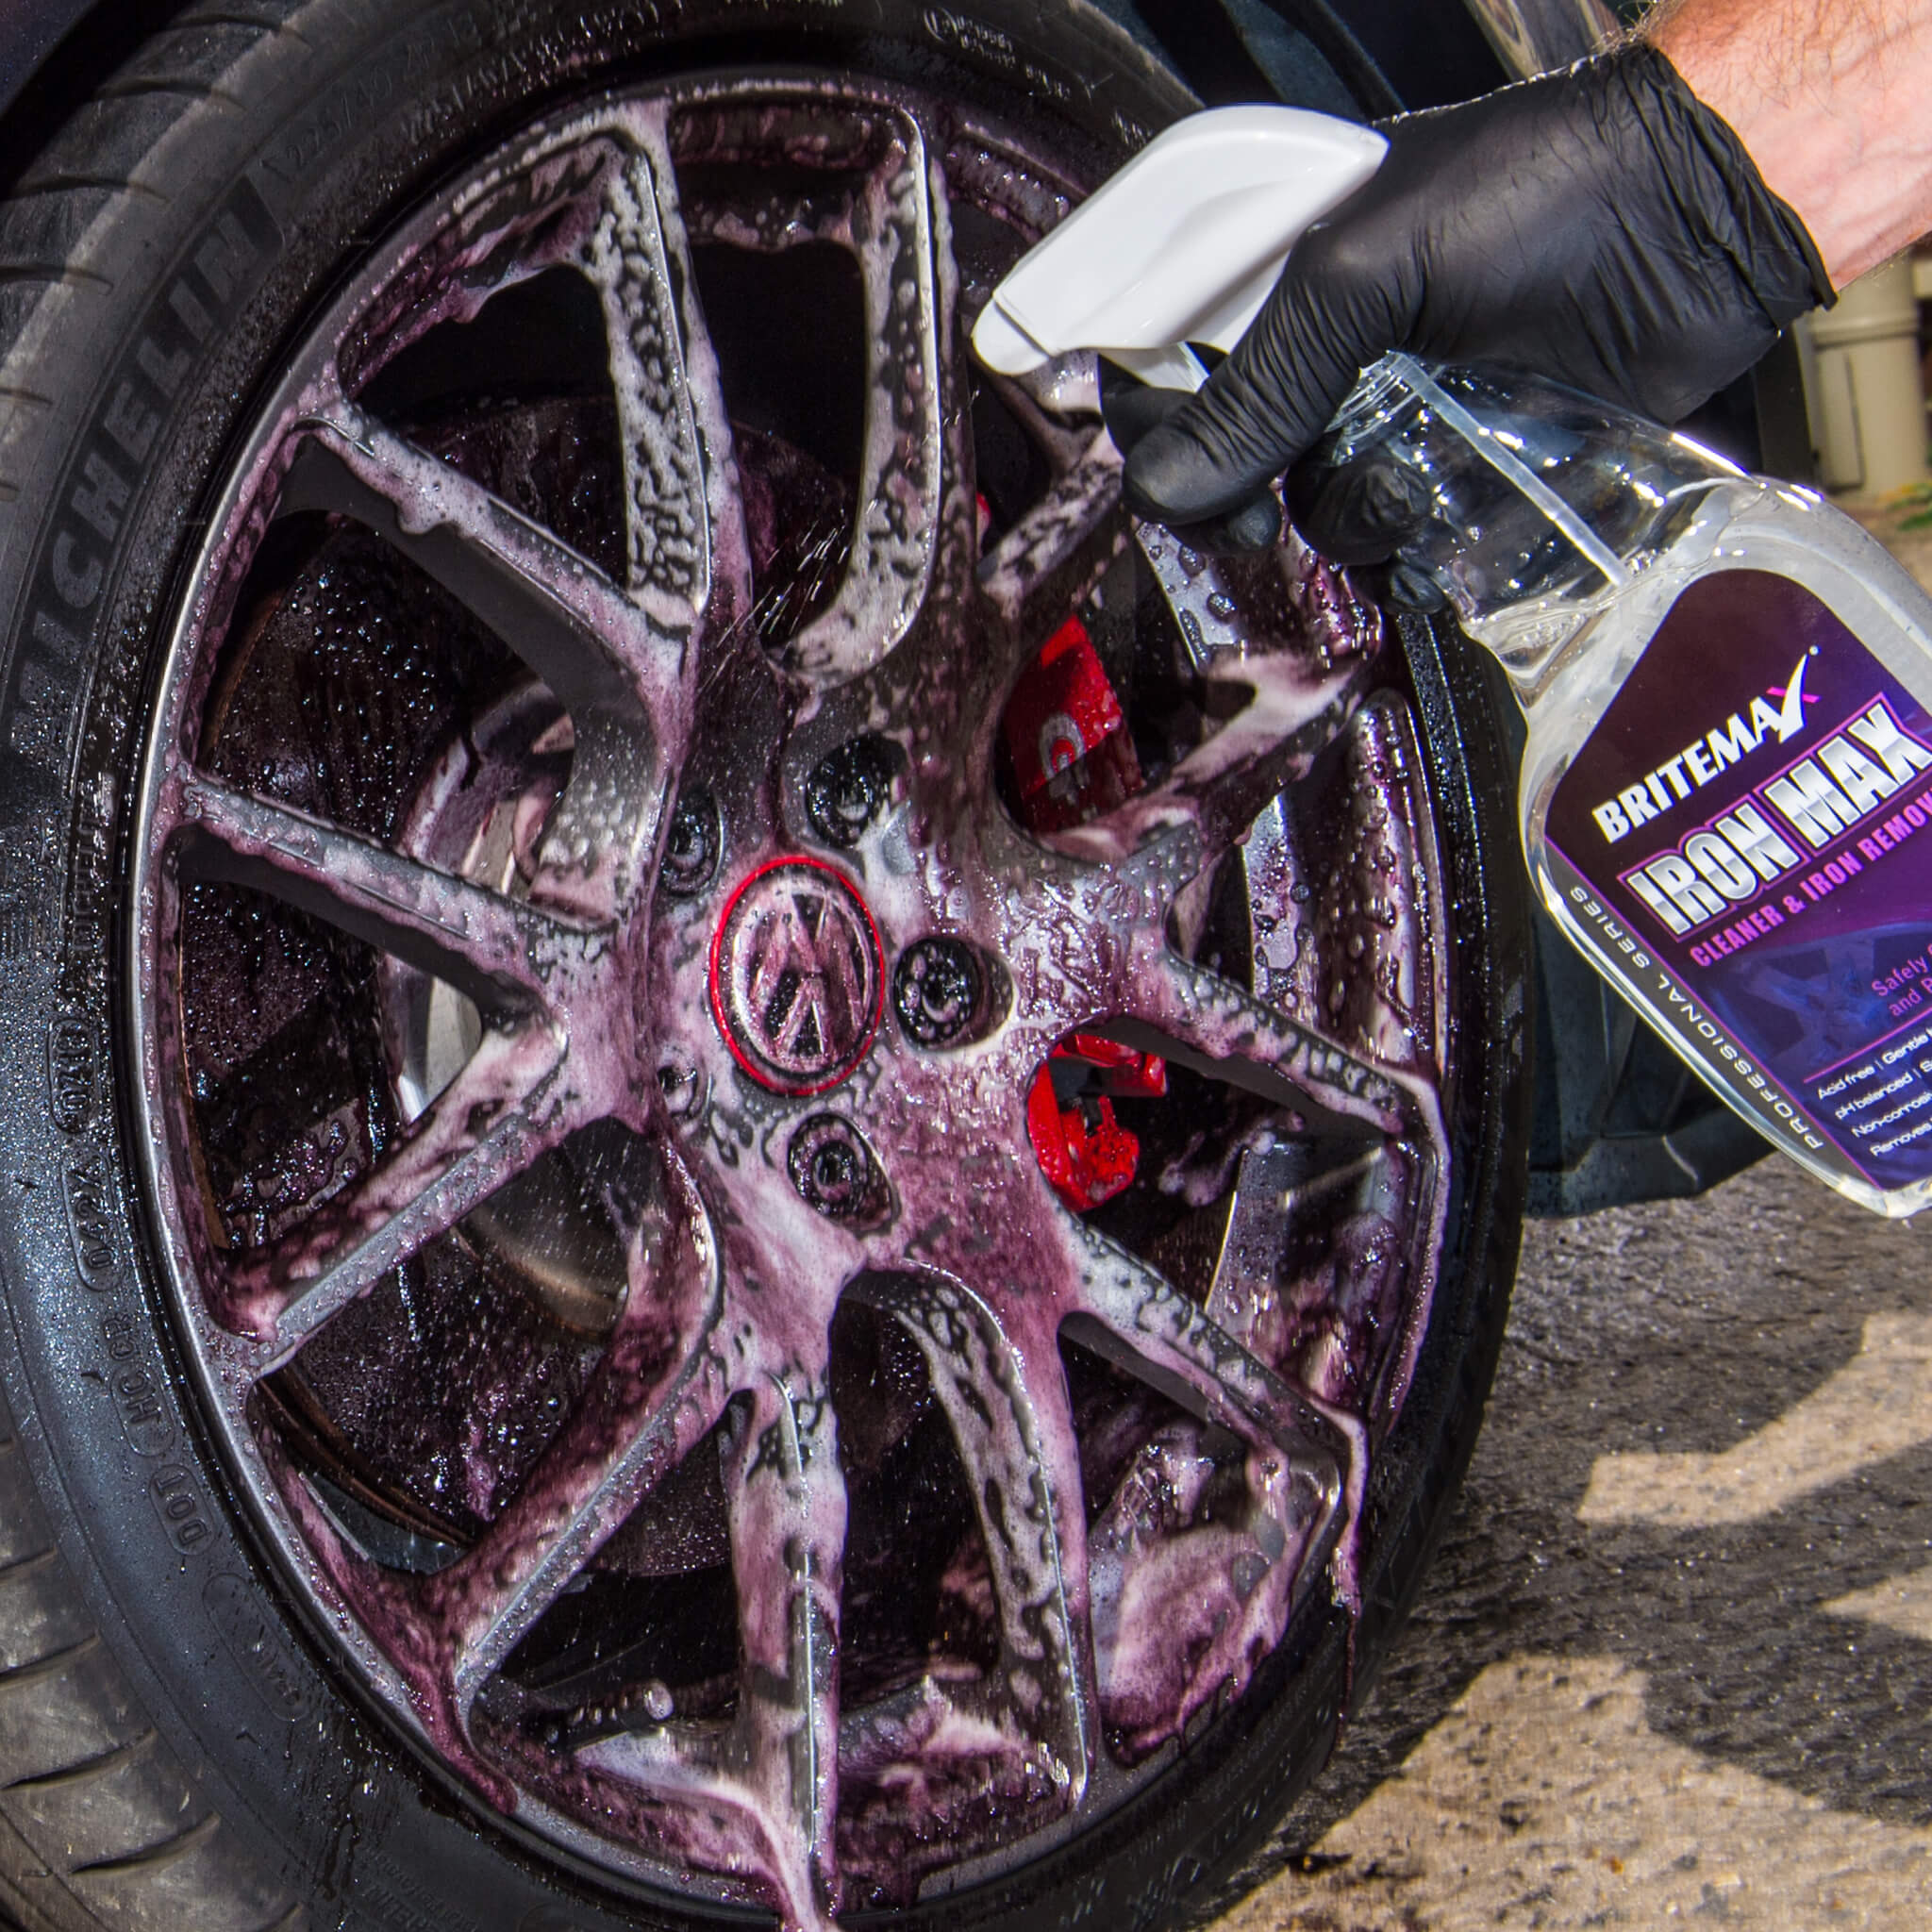 Britemax Iron Max Wheel Cleaner & Iron Fallout Remover